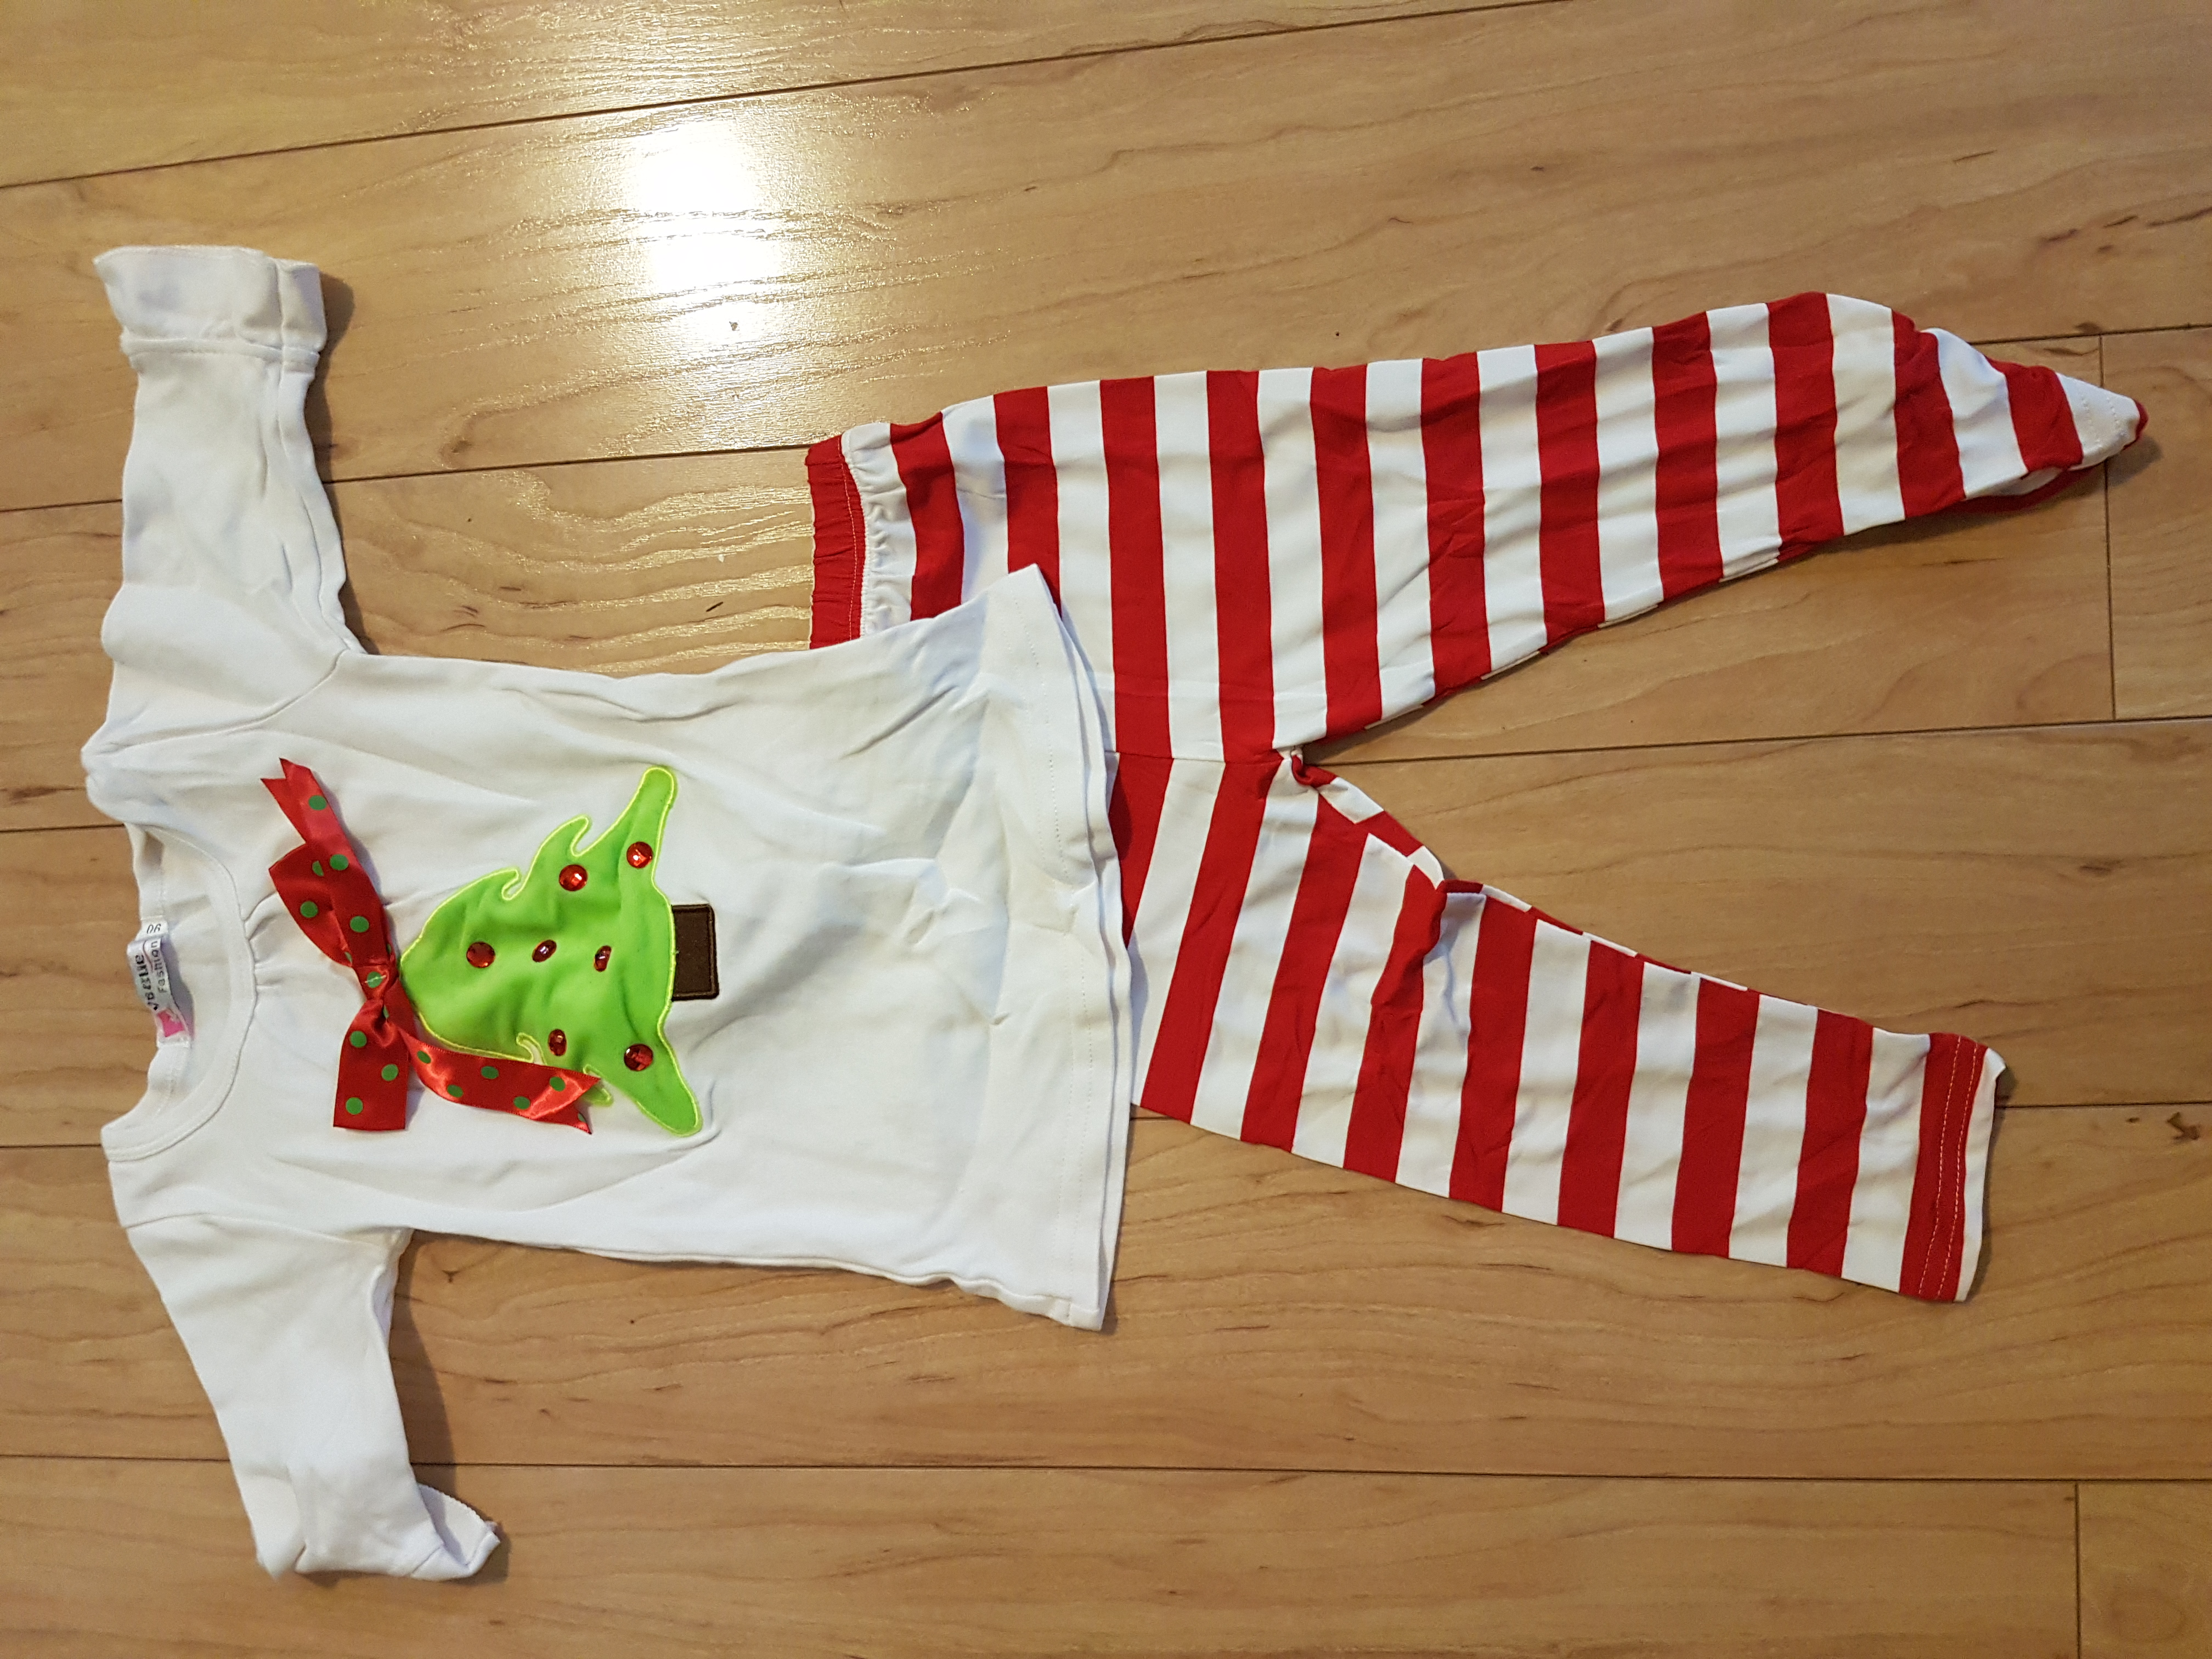 EUC Christmas outfit 18-24 months. Nw pick up off Rochdale. No holds